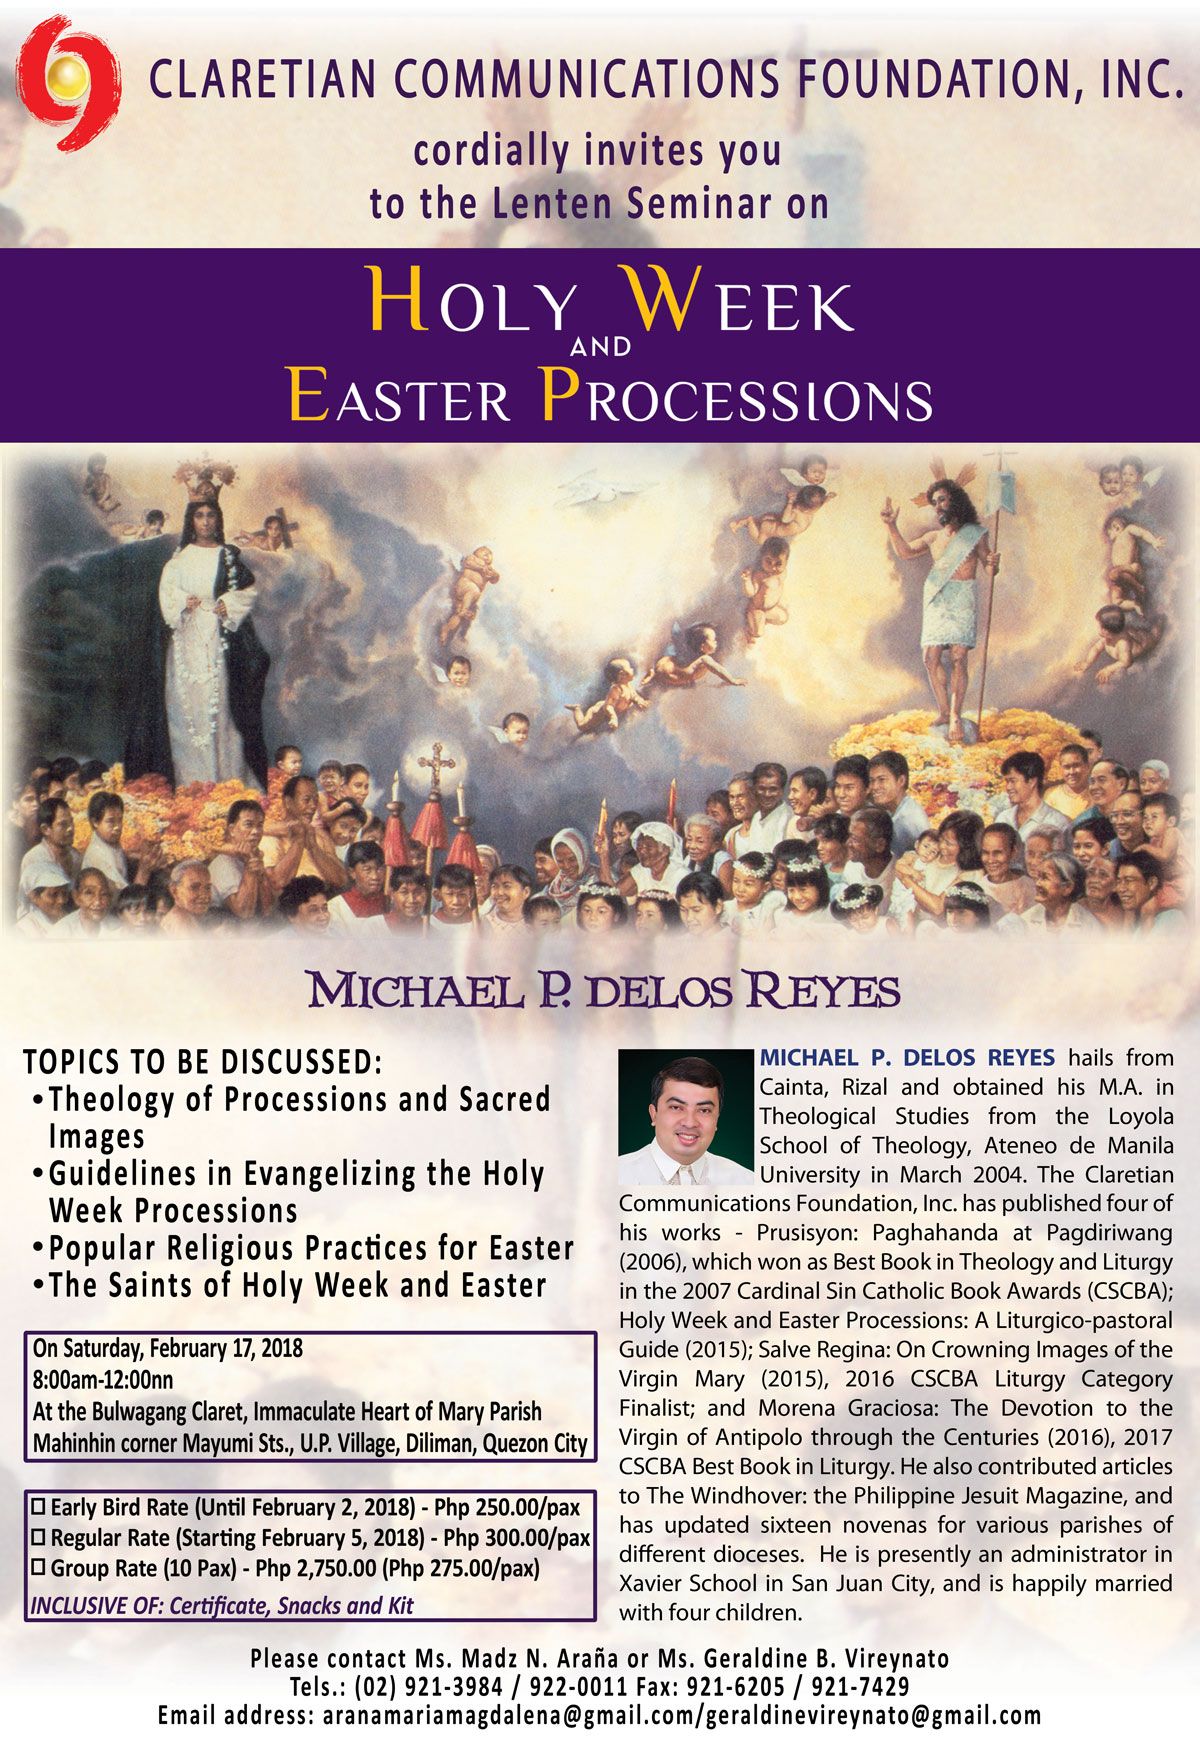 HOLY WEEK AND EASTER PROCESSIONS